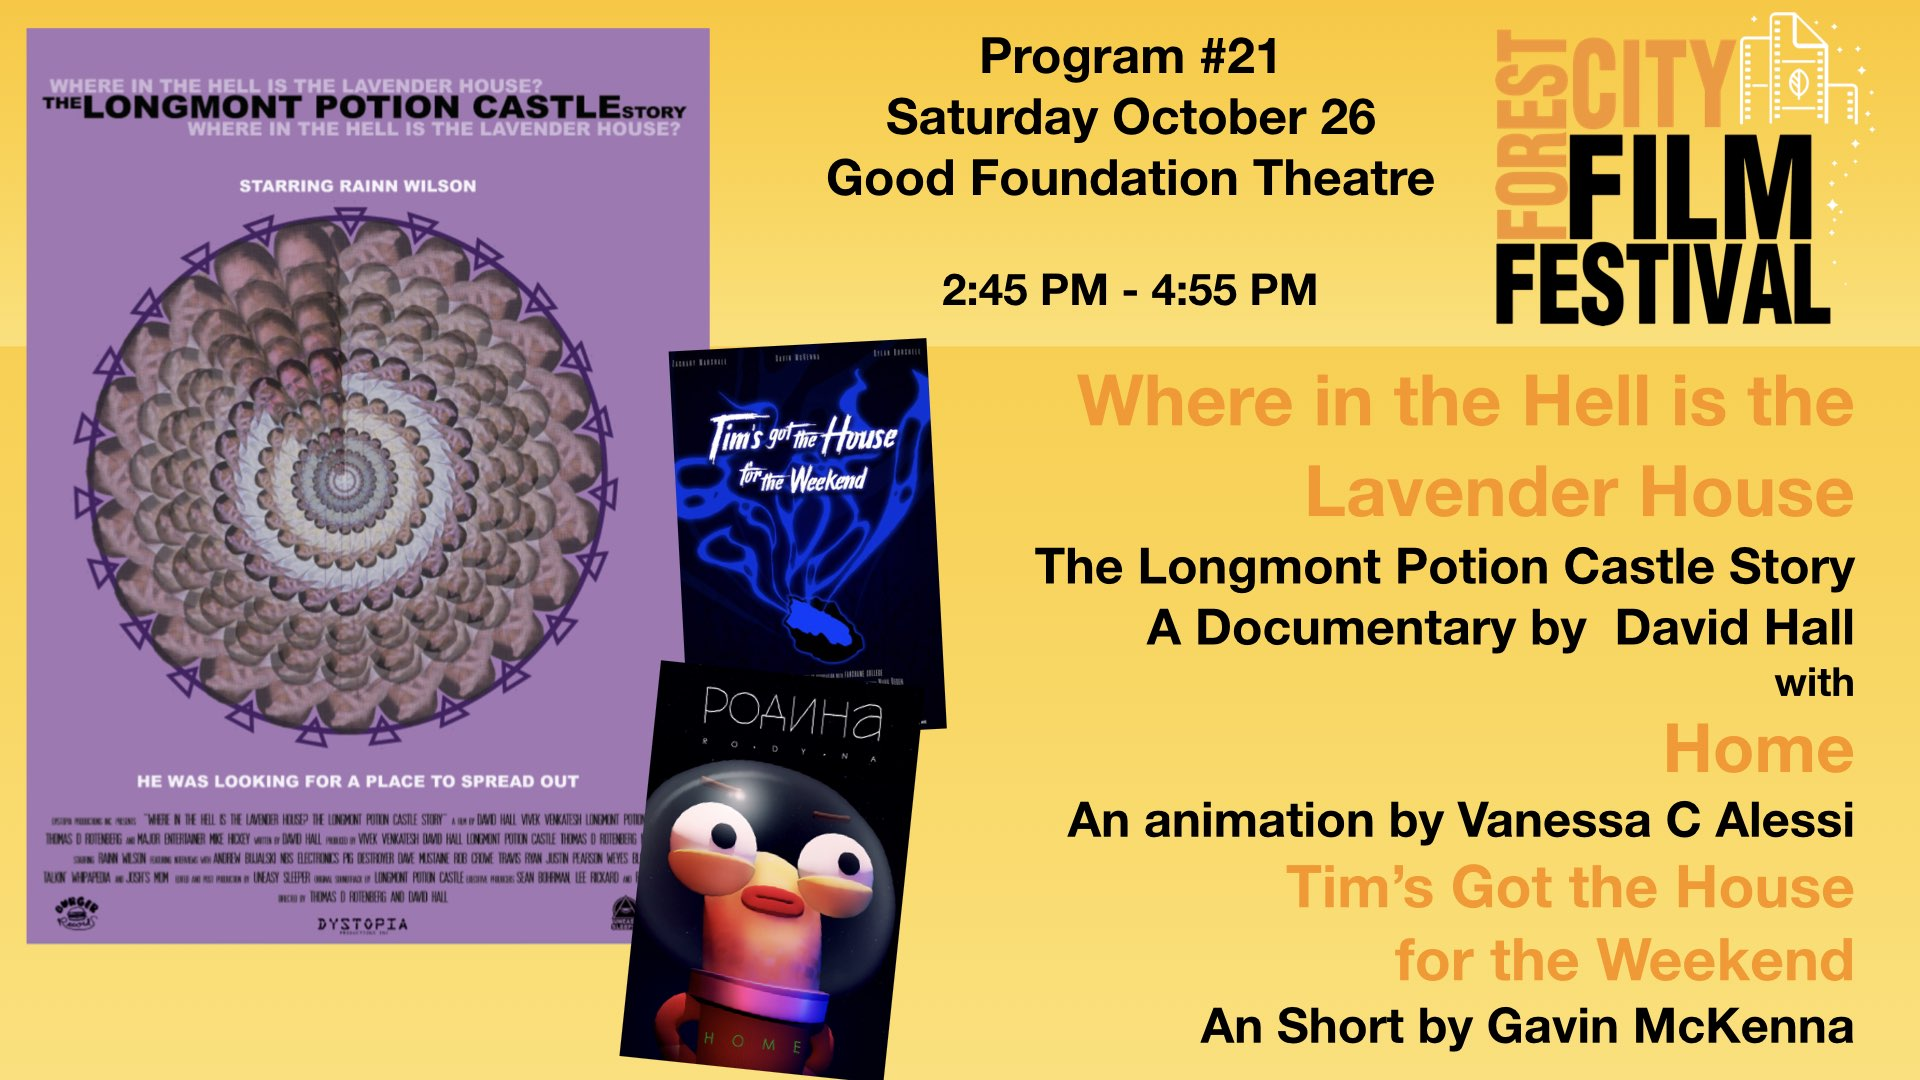 FCFF 2019 - Saturday Afternoon at Good Foundation Theatre #21- The Longmont Potion Castle Story & Home & Tim's got the House...